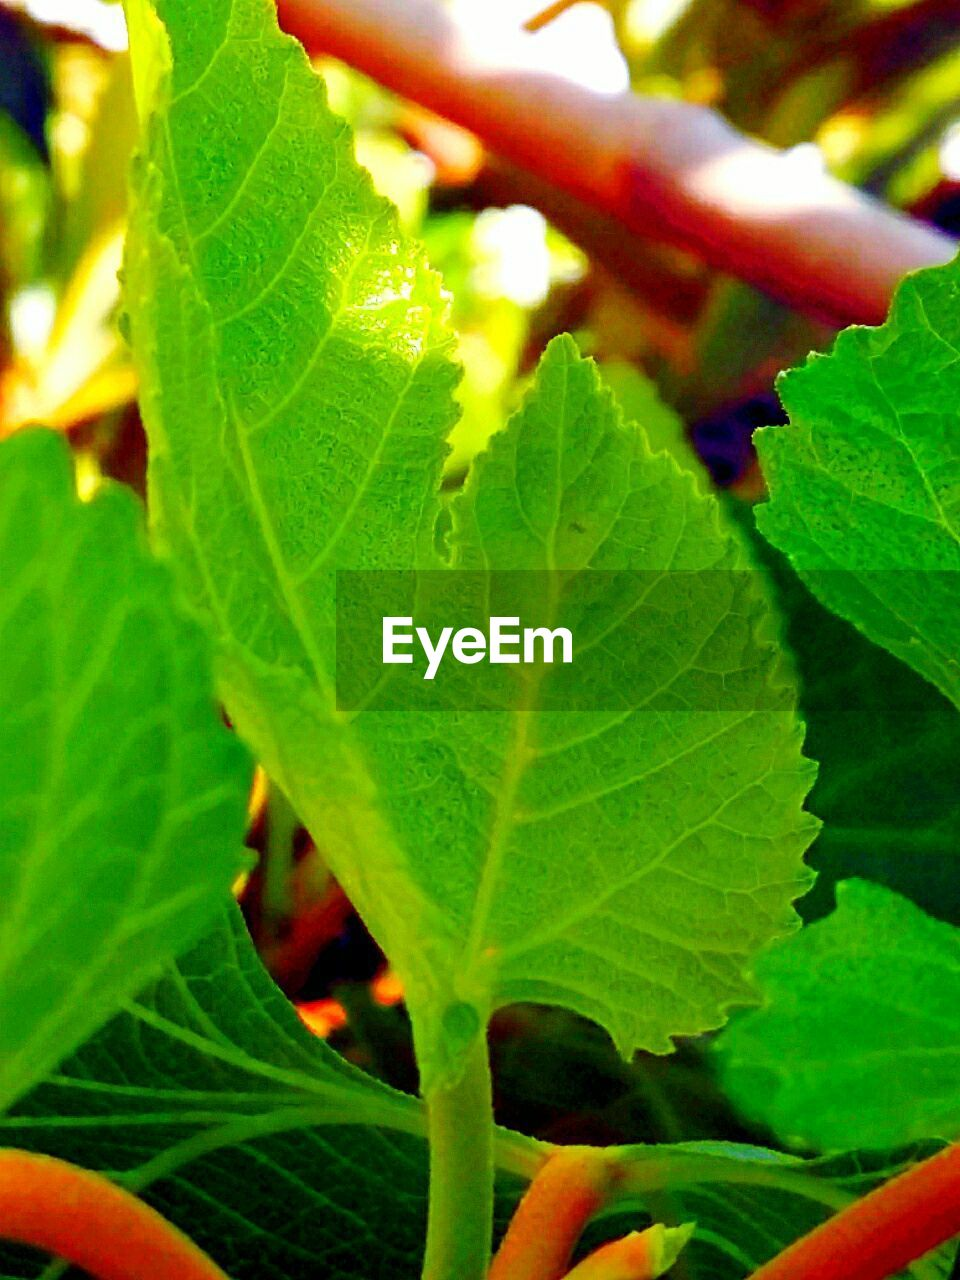 leaf, growth, green color, nature, close-up, outdoors, beauty in nature, day, freshness, fragility, no people